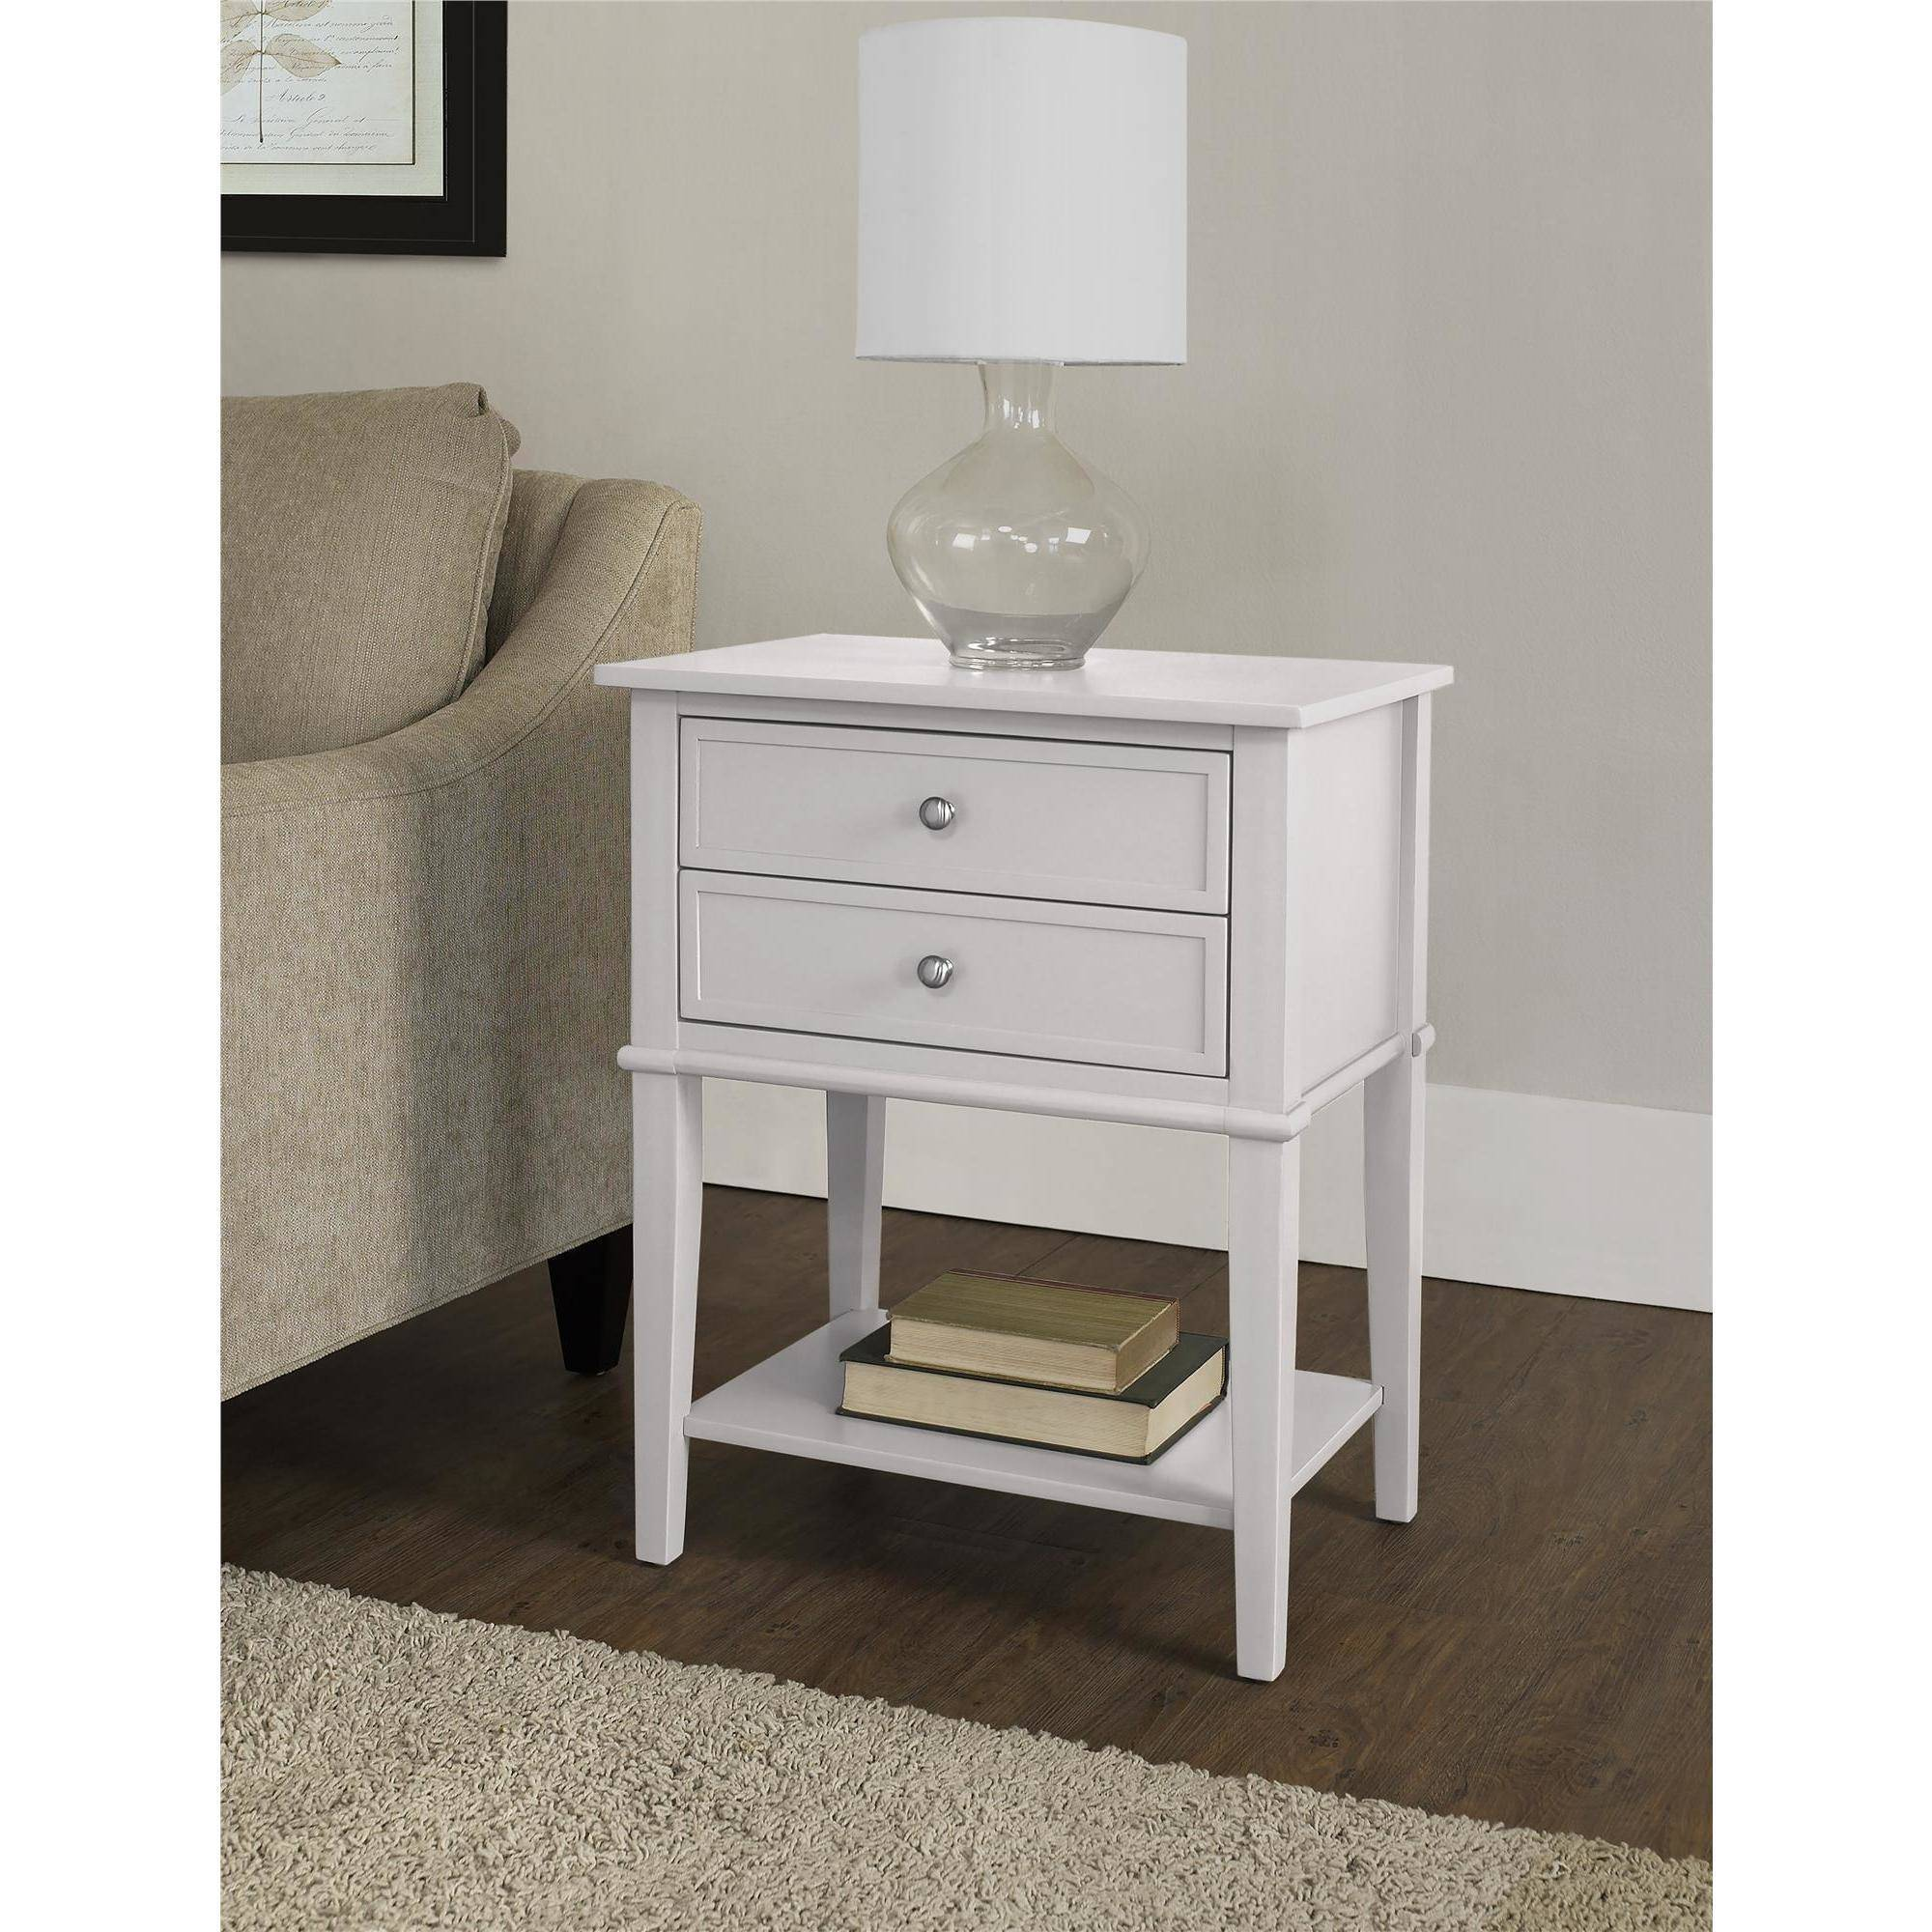 altra franklin accent table with drawers white ture garden chairs patriotic runner ashley furniture king size beds kohls wall clocks light attached mirrored coffee bedroom night